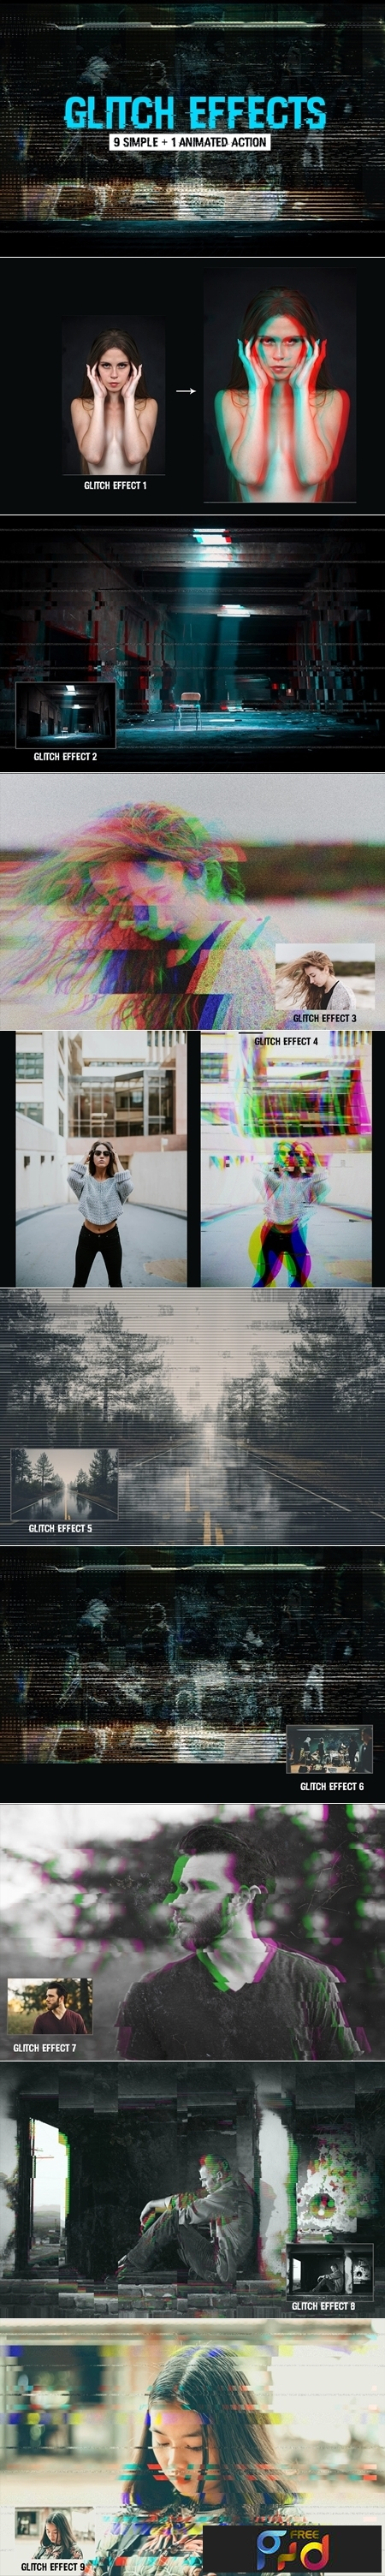 Glitch Effects Mega Pack 3649276 1